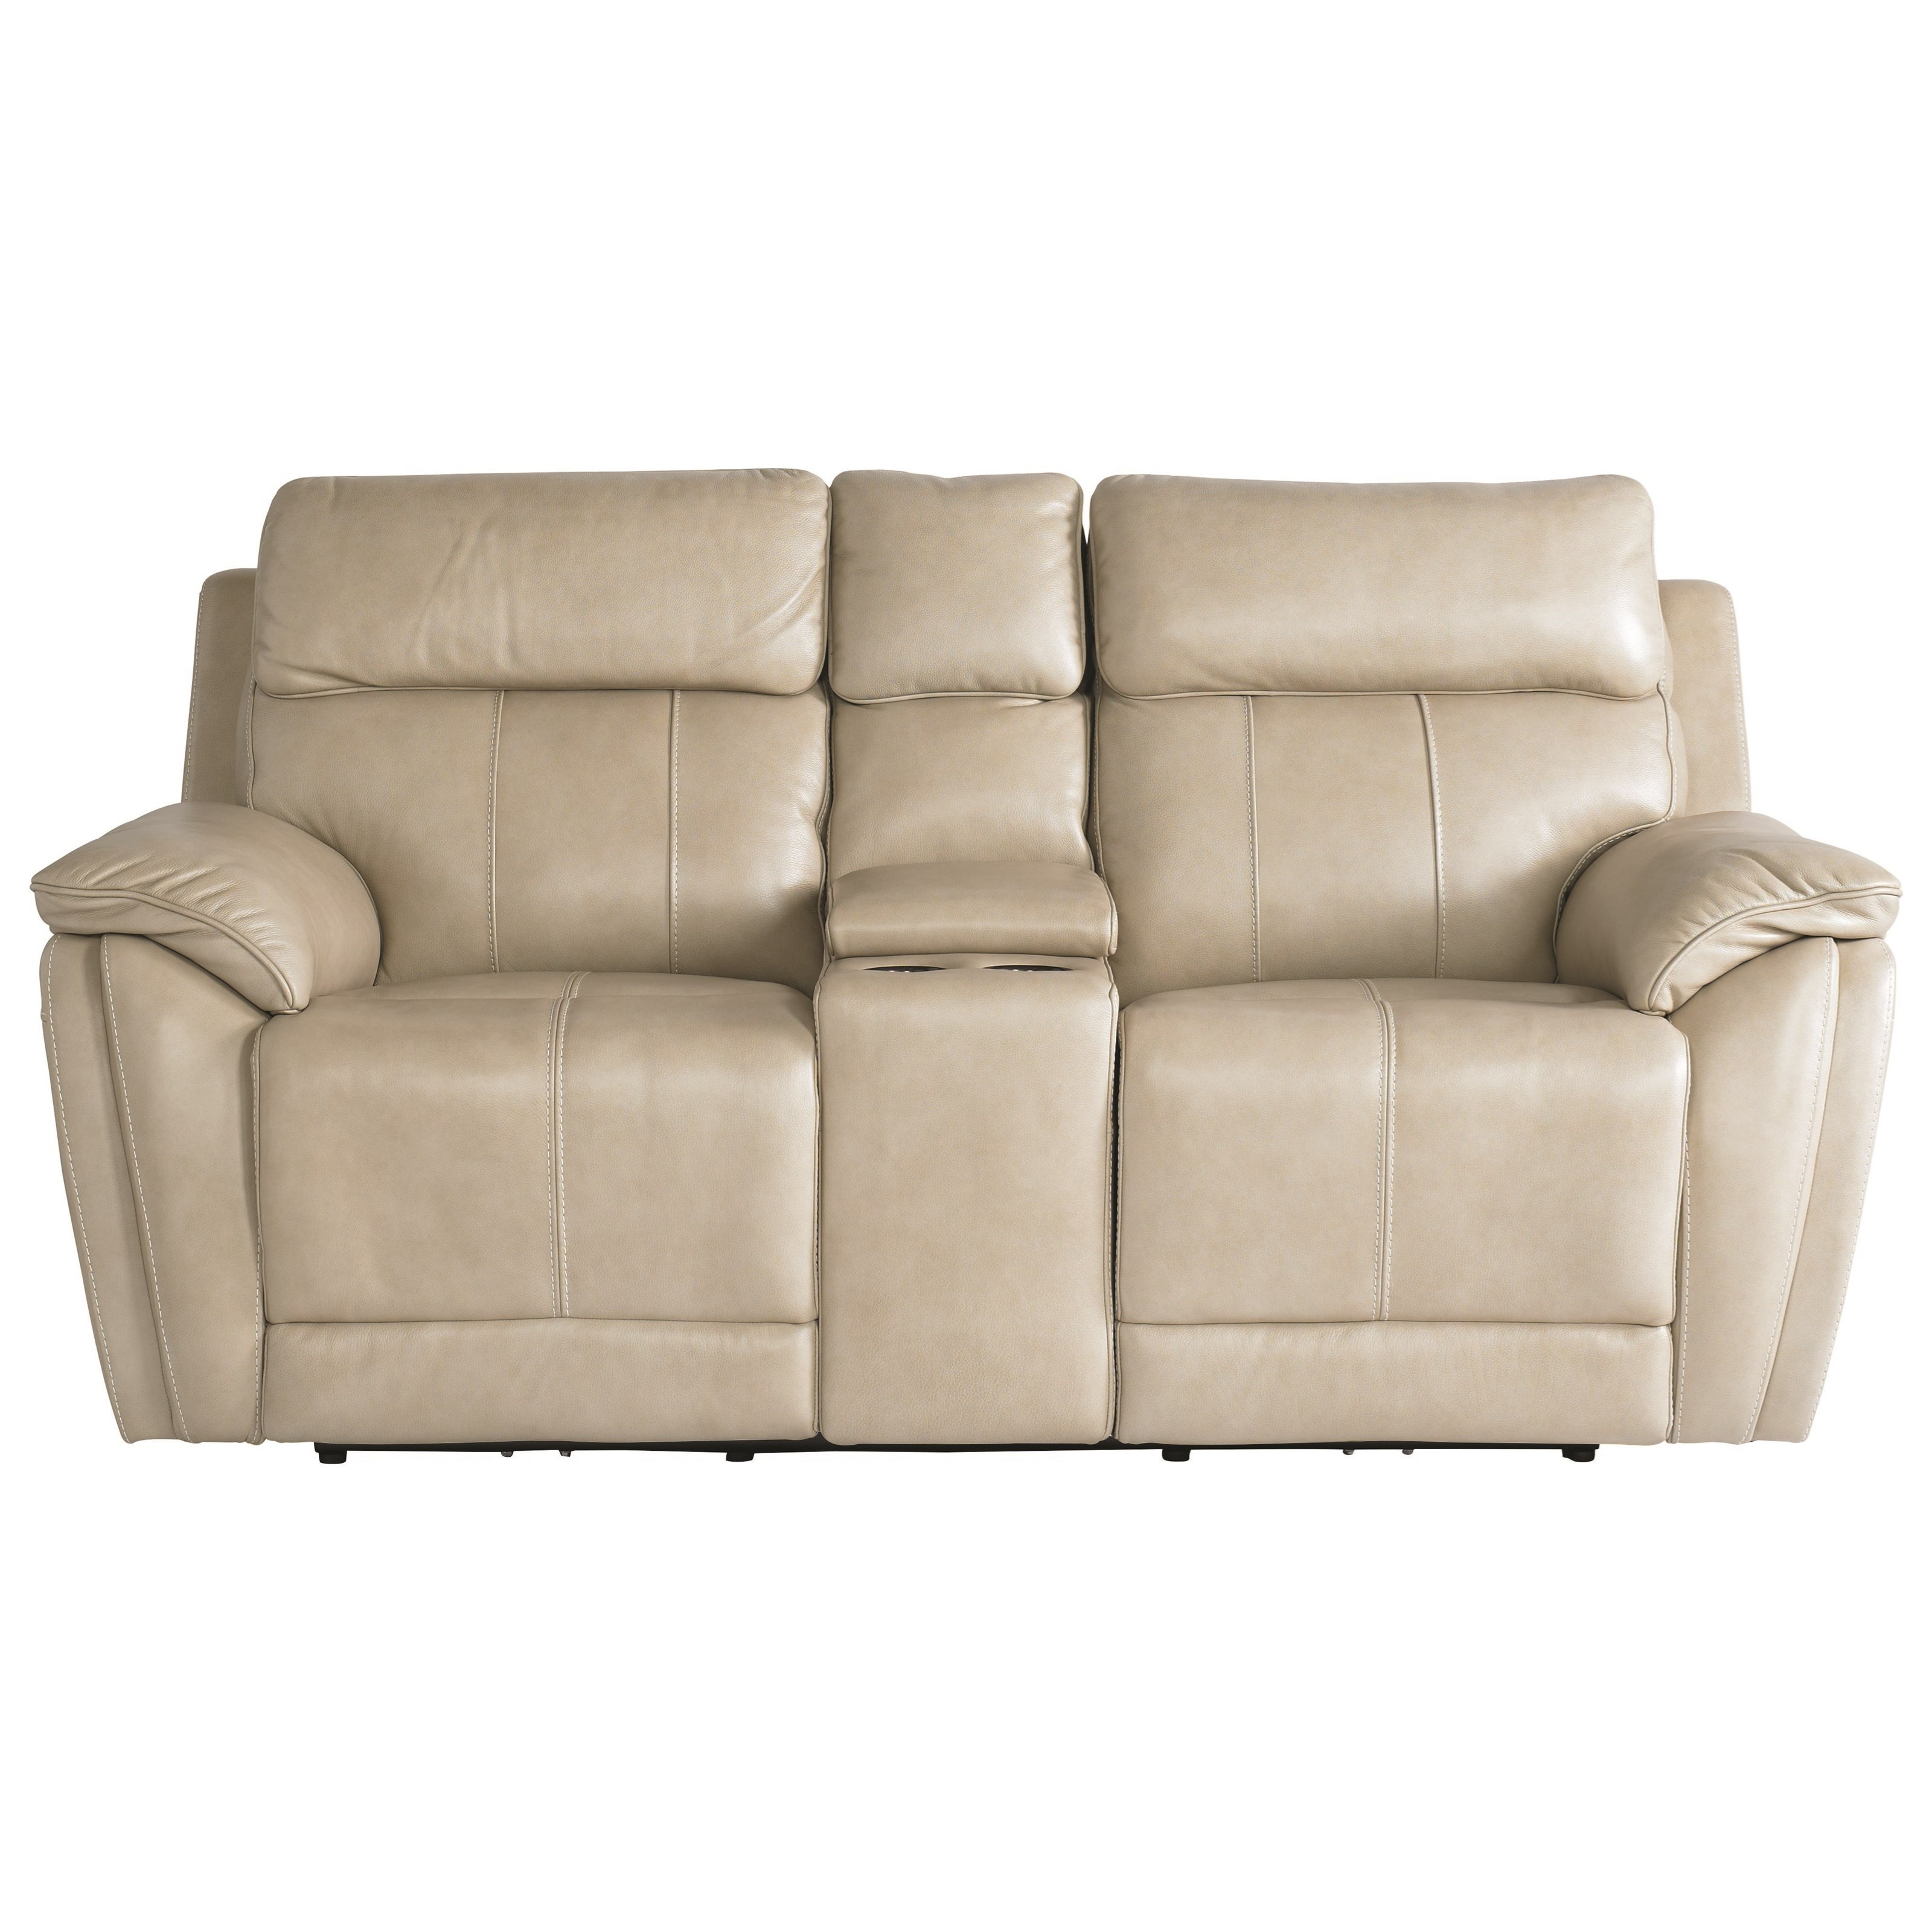 Club Level - Levitate Motion Loveseat by Bassett at Darvin Furniture